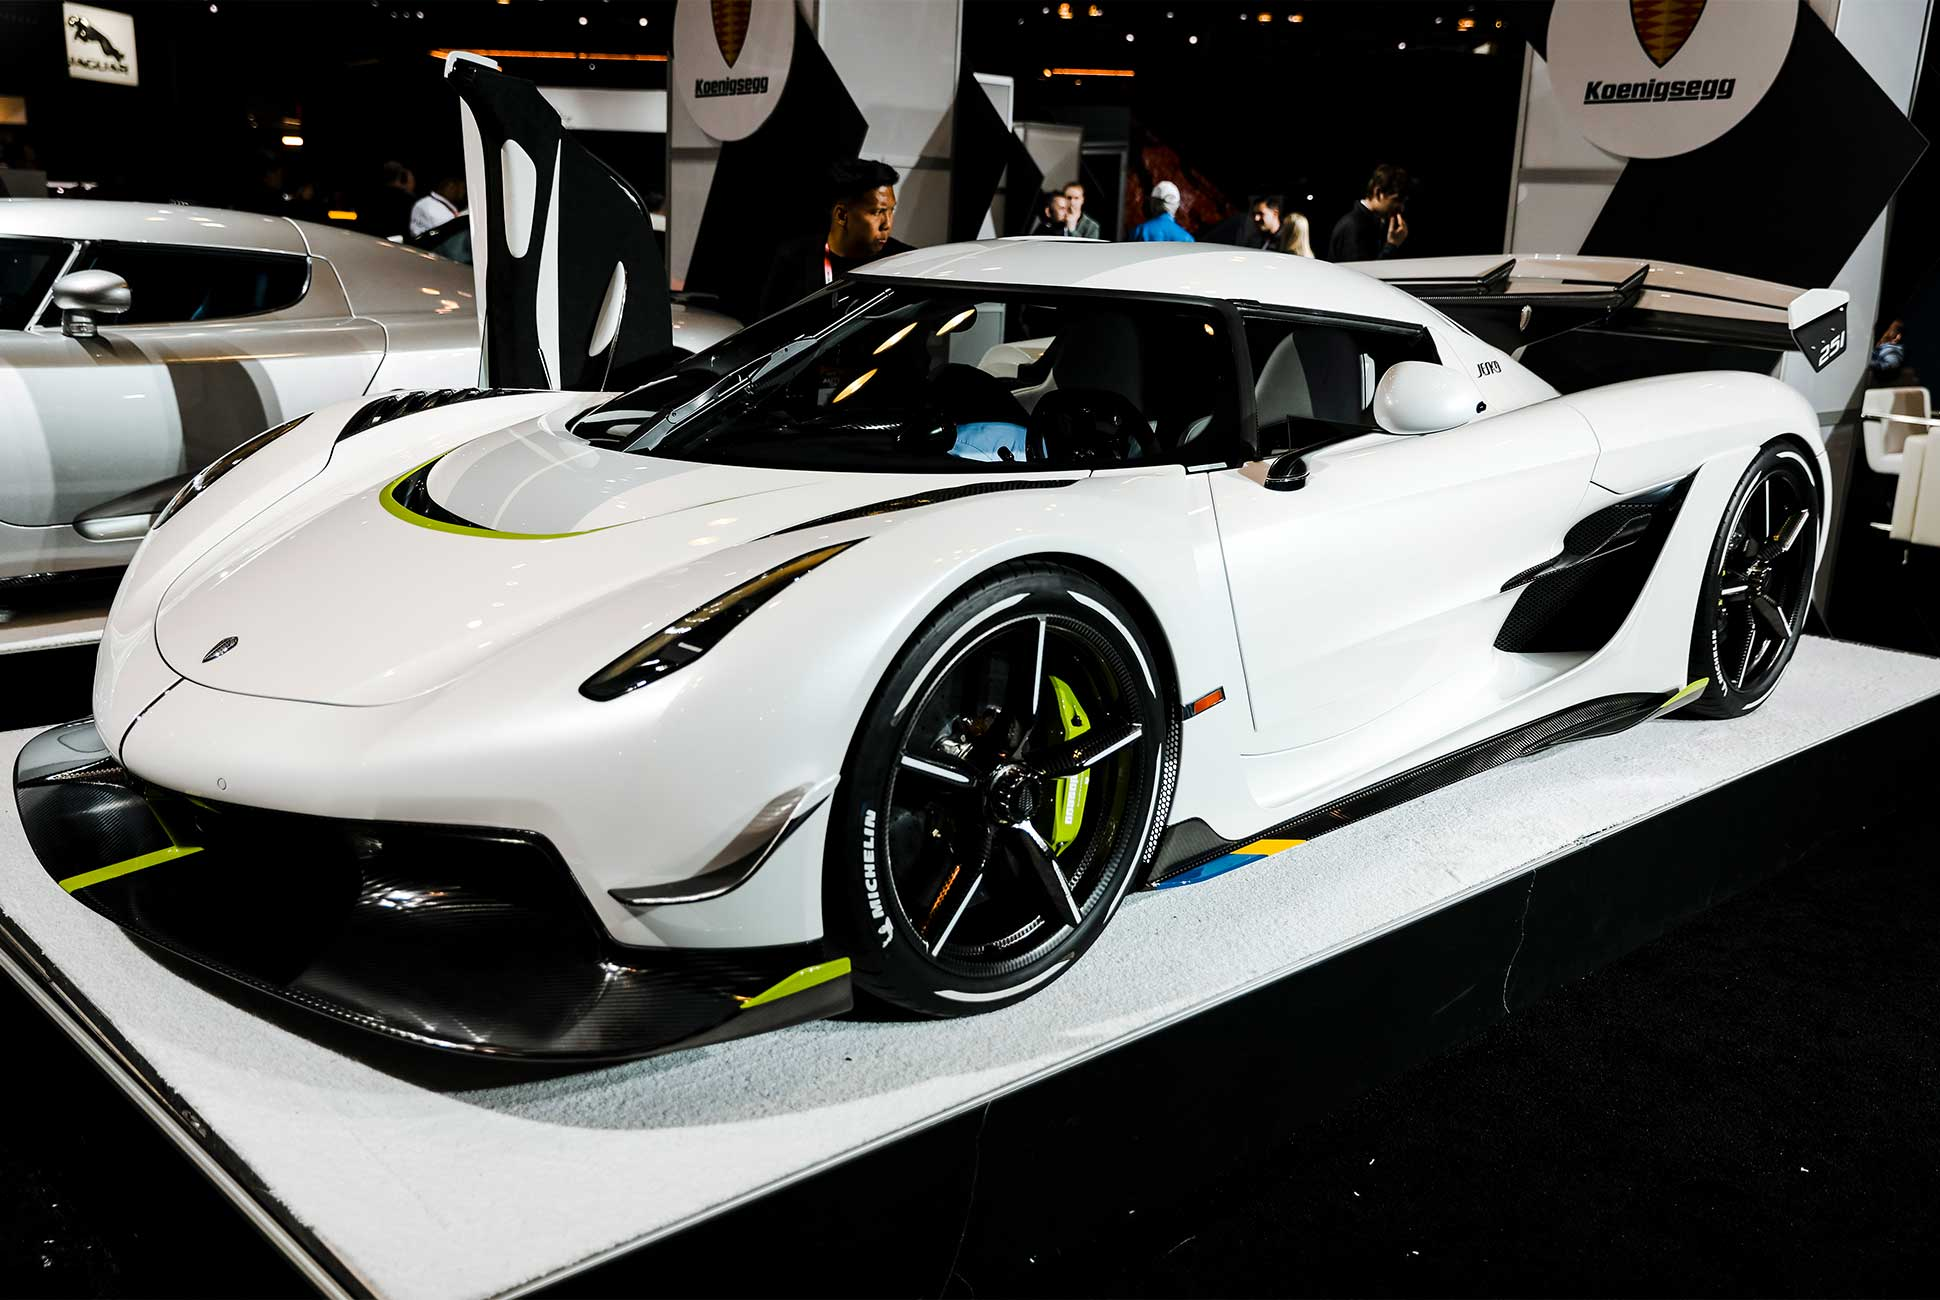 Best Sprot Cars 2019 Awesome the Best New Cars Of the 2019 New York Auto Show • Gear Patrol